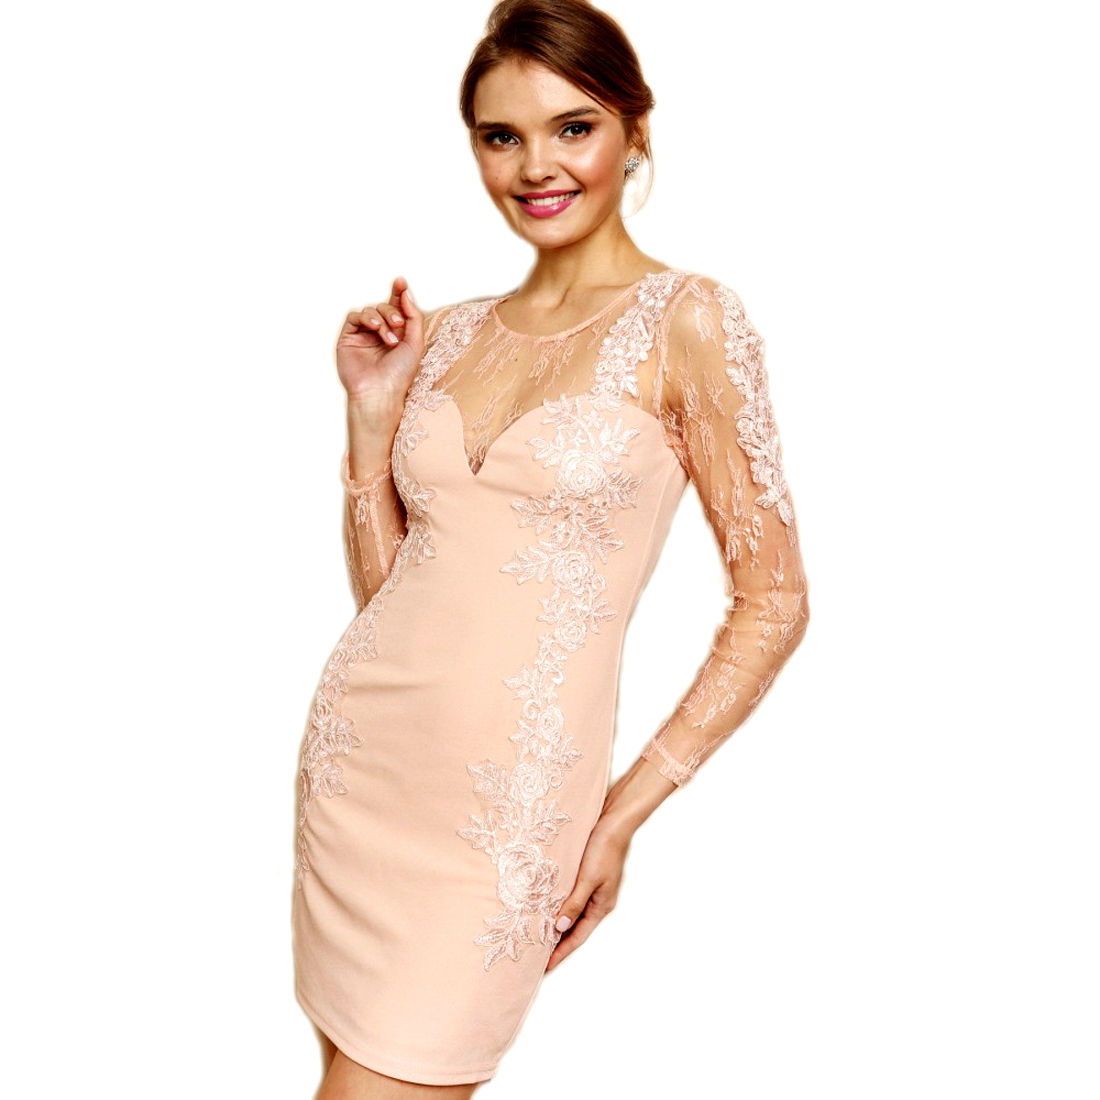 c46382eeca4cd Soieblu Blush Long Sleve Lace Bodycon Mini Short Dress with Golden Blush  Embroideries, Small